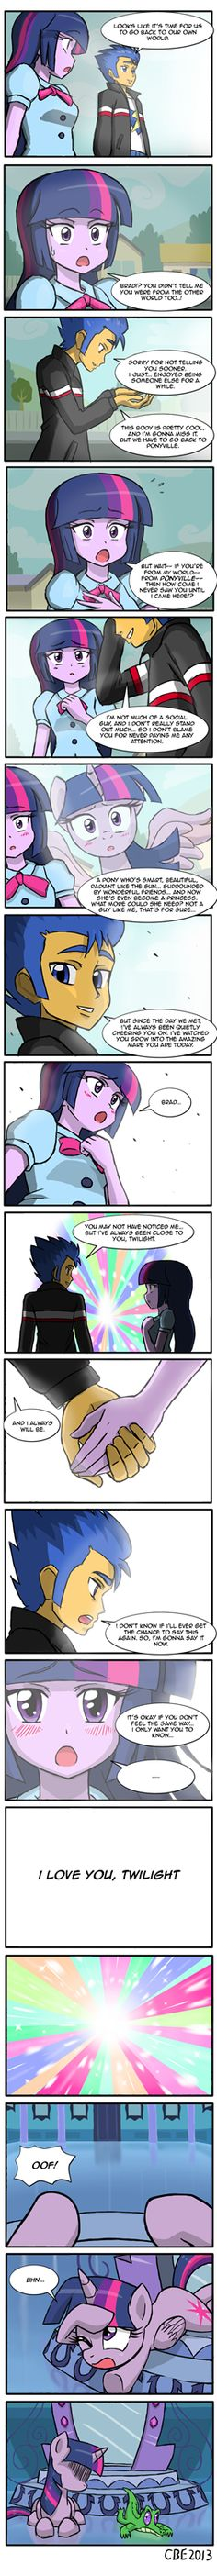 The Ending to Equestria Girls. You have to read it till the end! So funny!